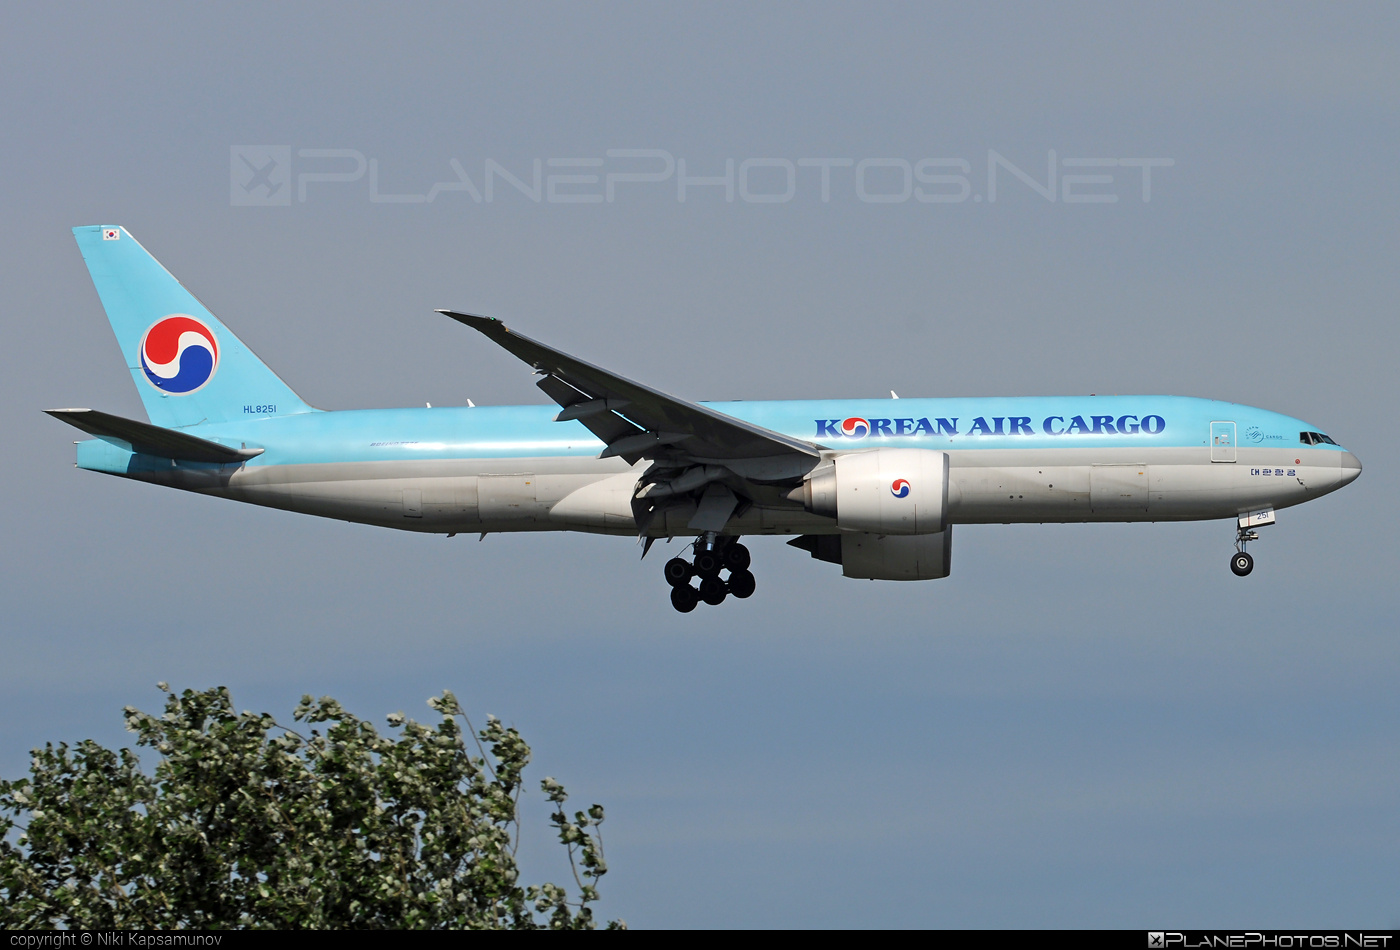 Boeing 777F - HL8251 operated by Korean Air Cargo #b777 #b777f #b777freighter #boeing #boeing777 #koreanair #koreanaircargo #tripleseven